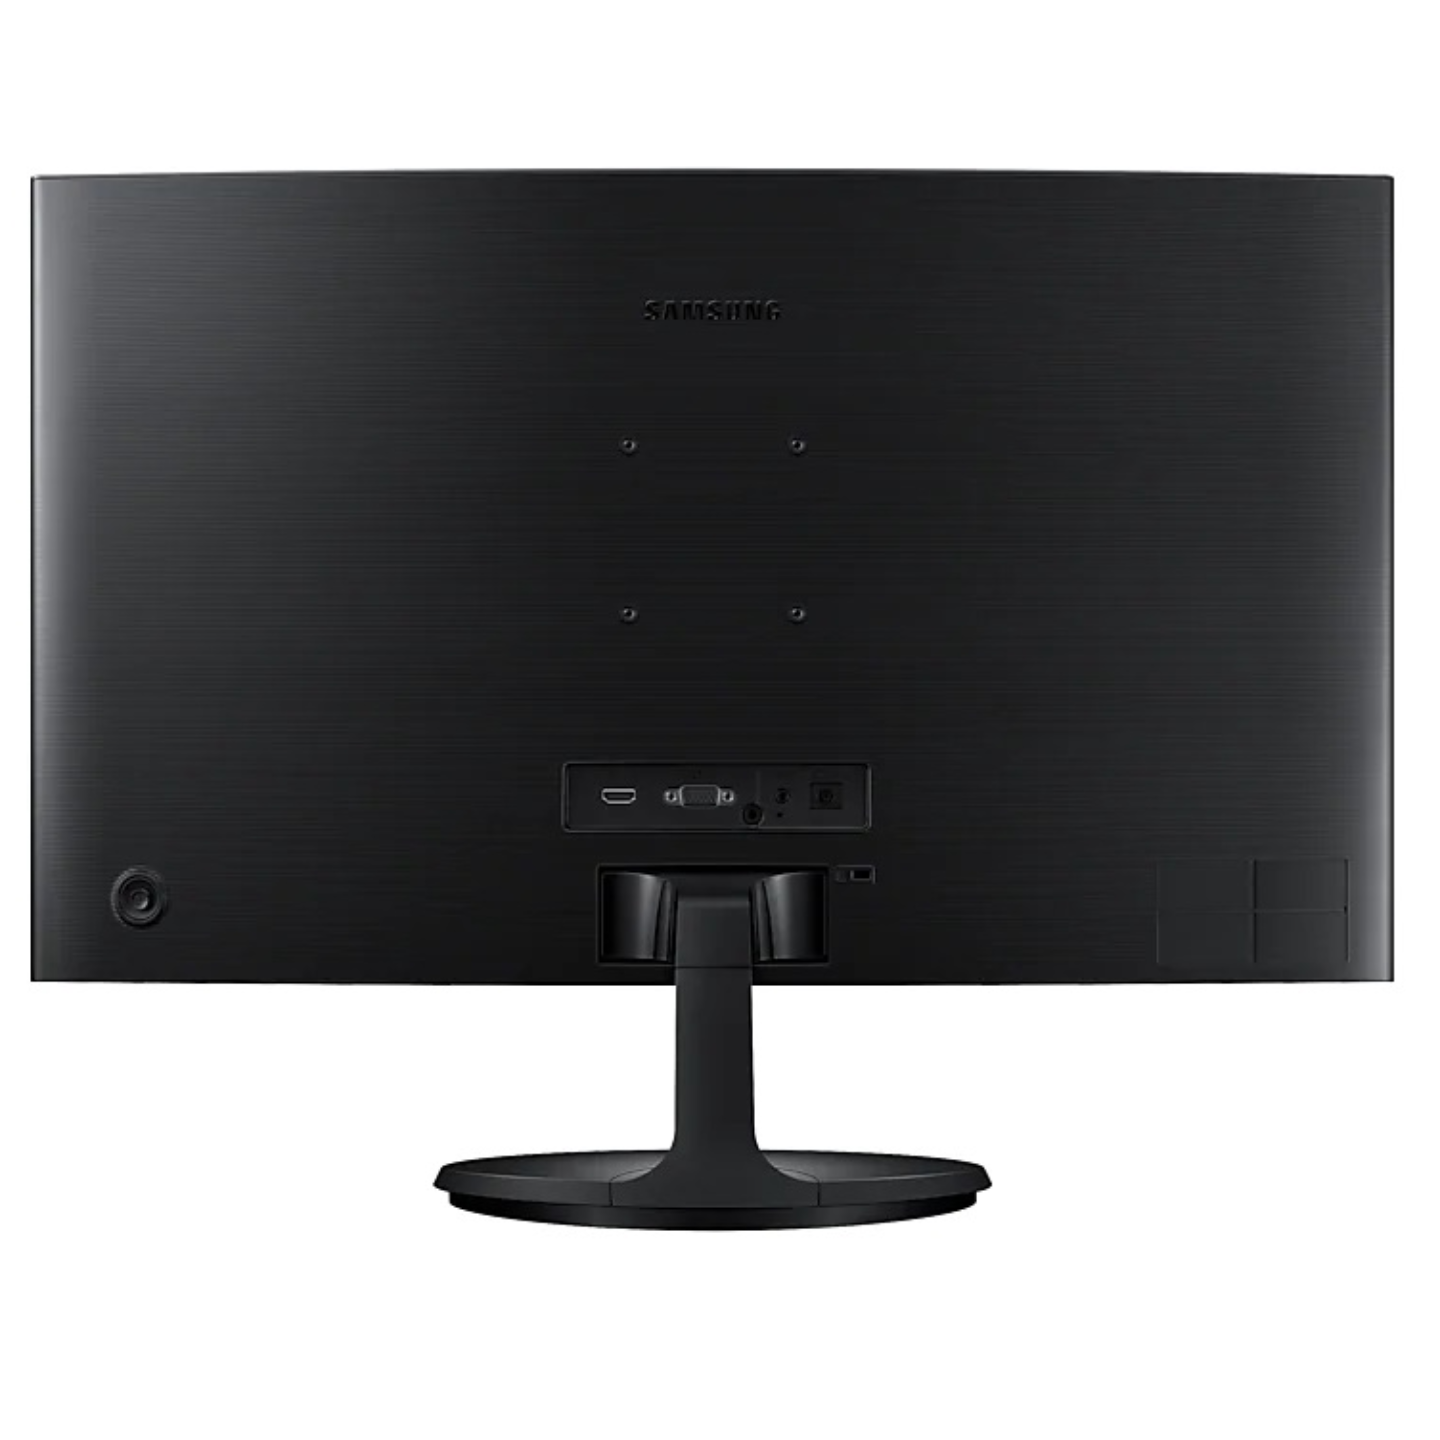 "ZOOM IN 27"" Essential Curved Monitor CF390 LC27F390FHEXXS"